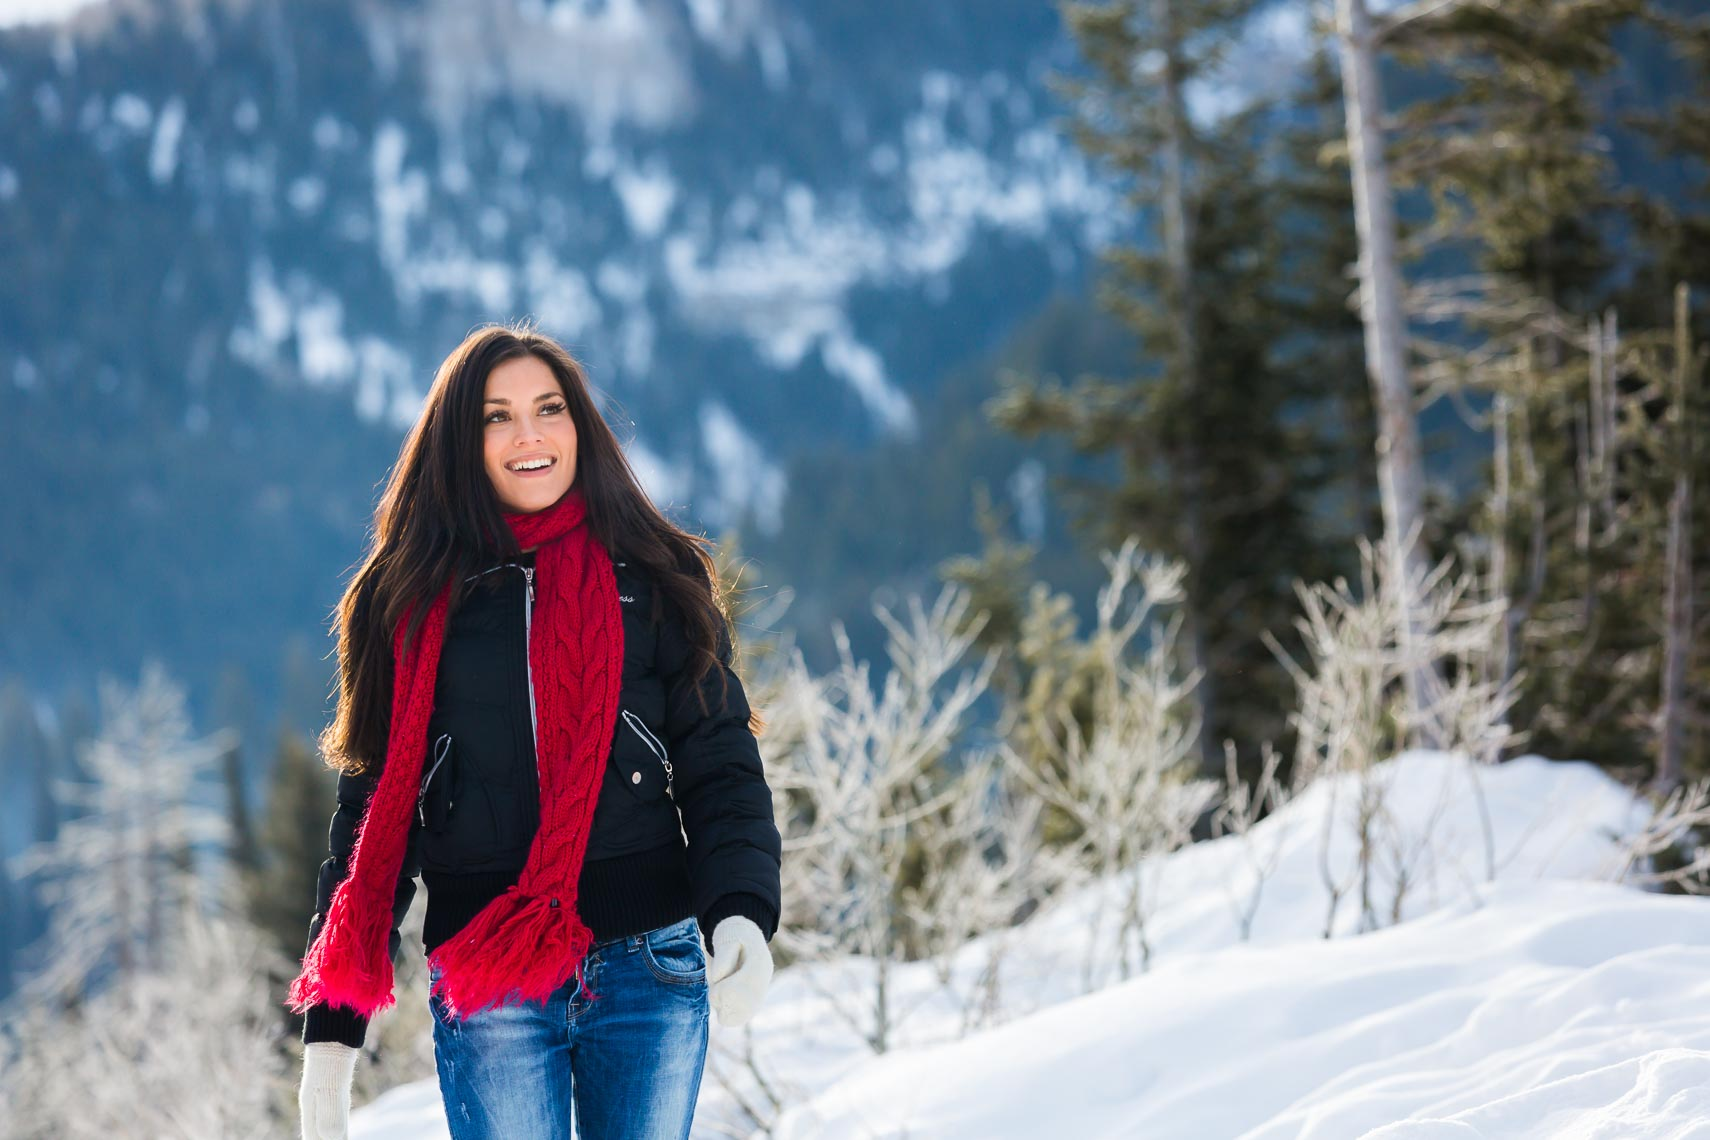 Utah Winter Lifestyle Ethnic Woman | Michael DeYoung